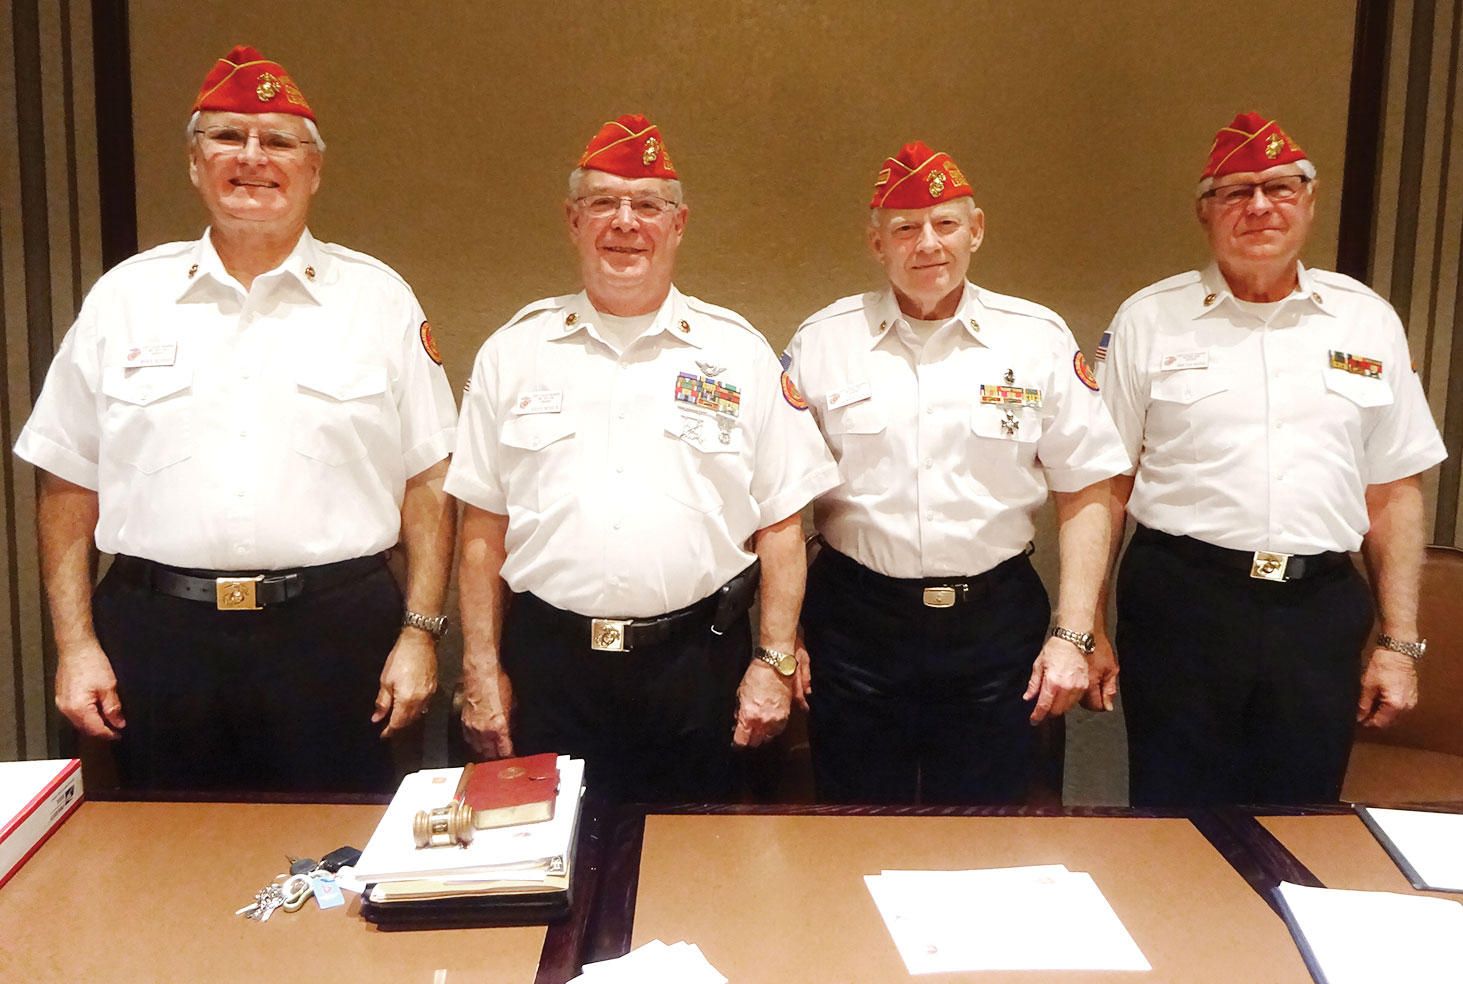 Newly installed officers Mike Bishop, Dave Minick, Dave Lott and John Van Houten